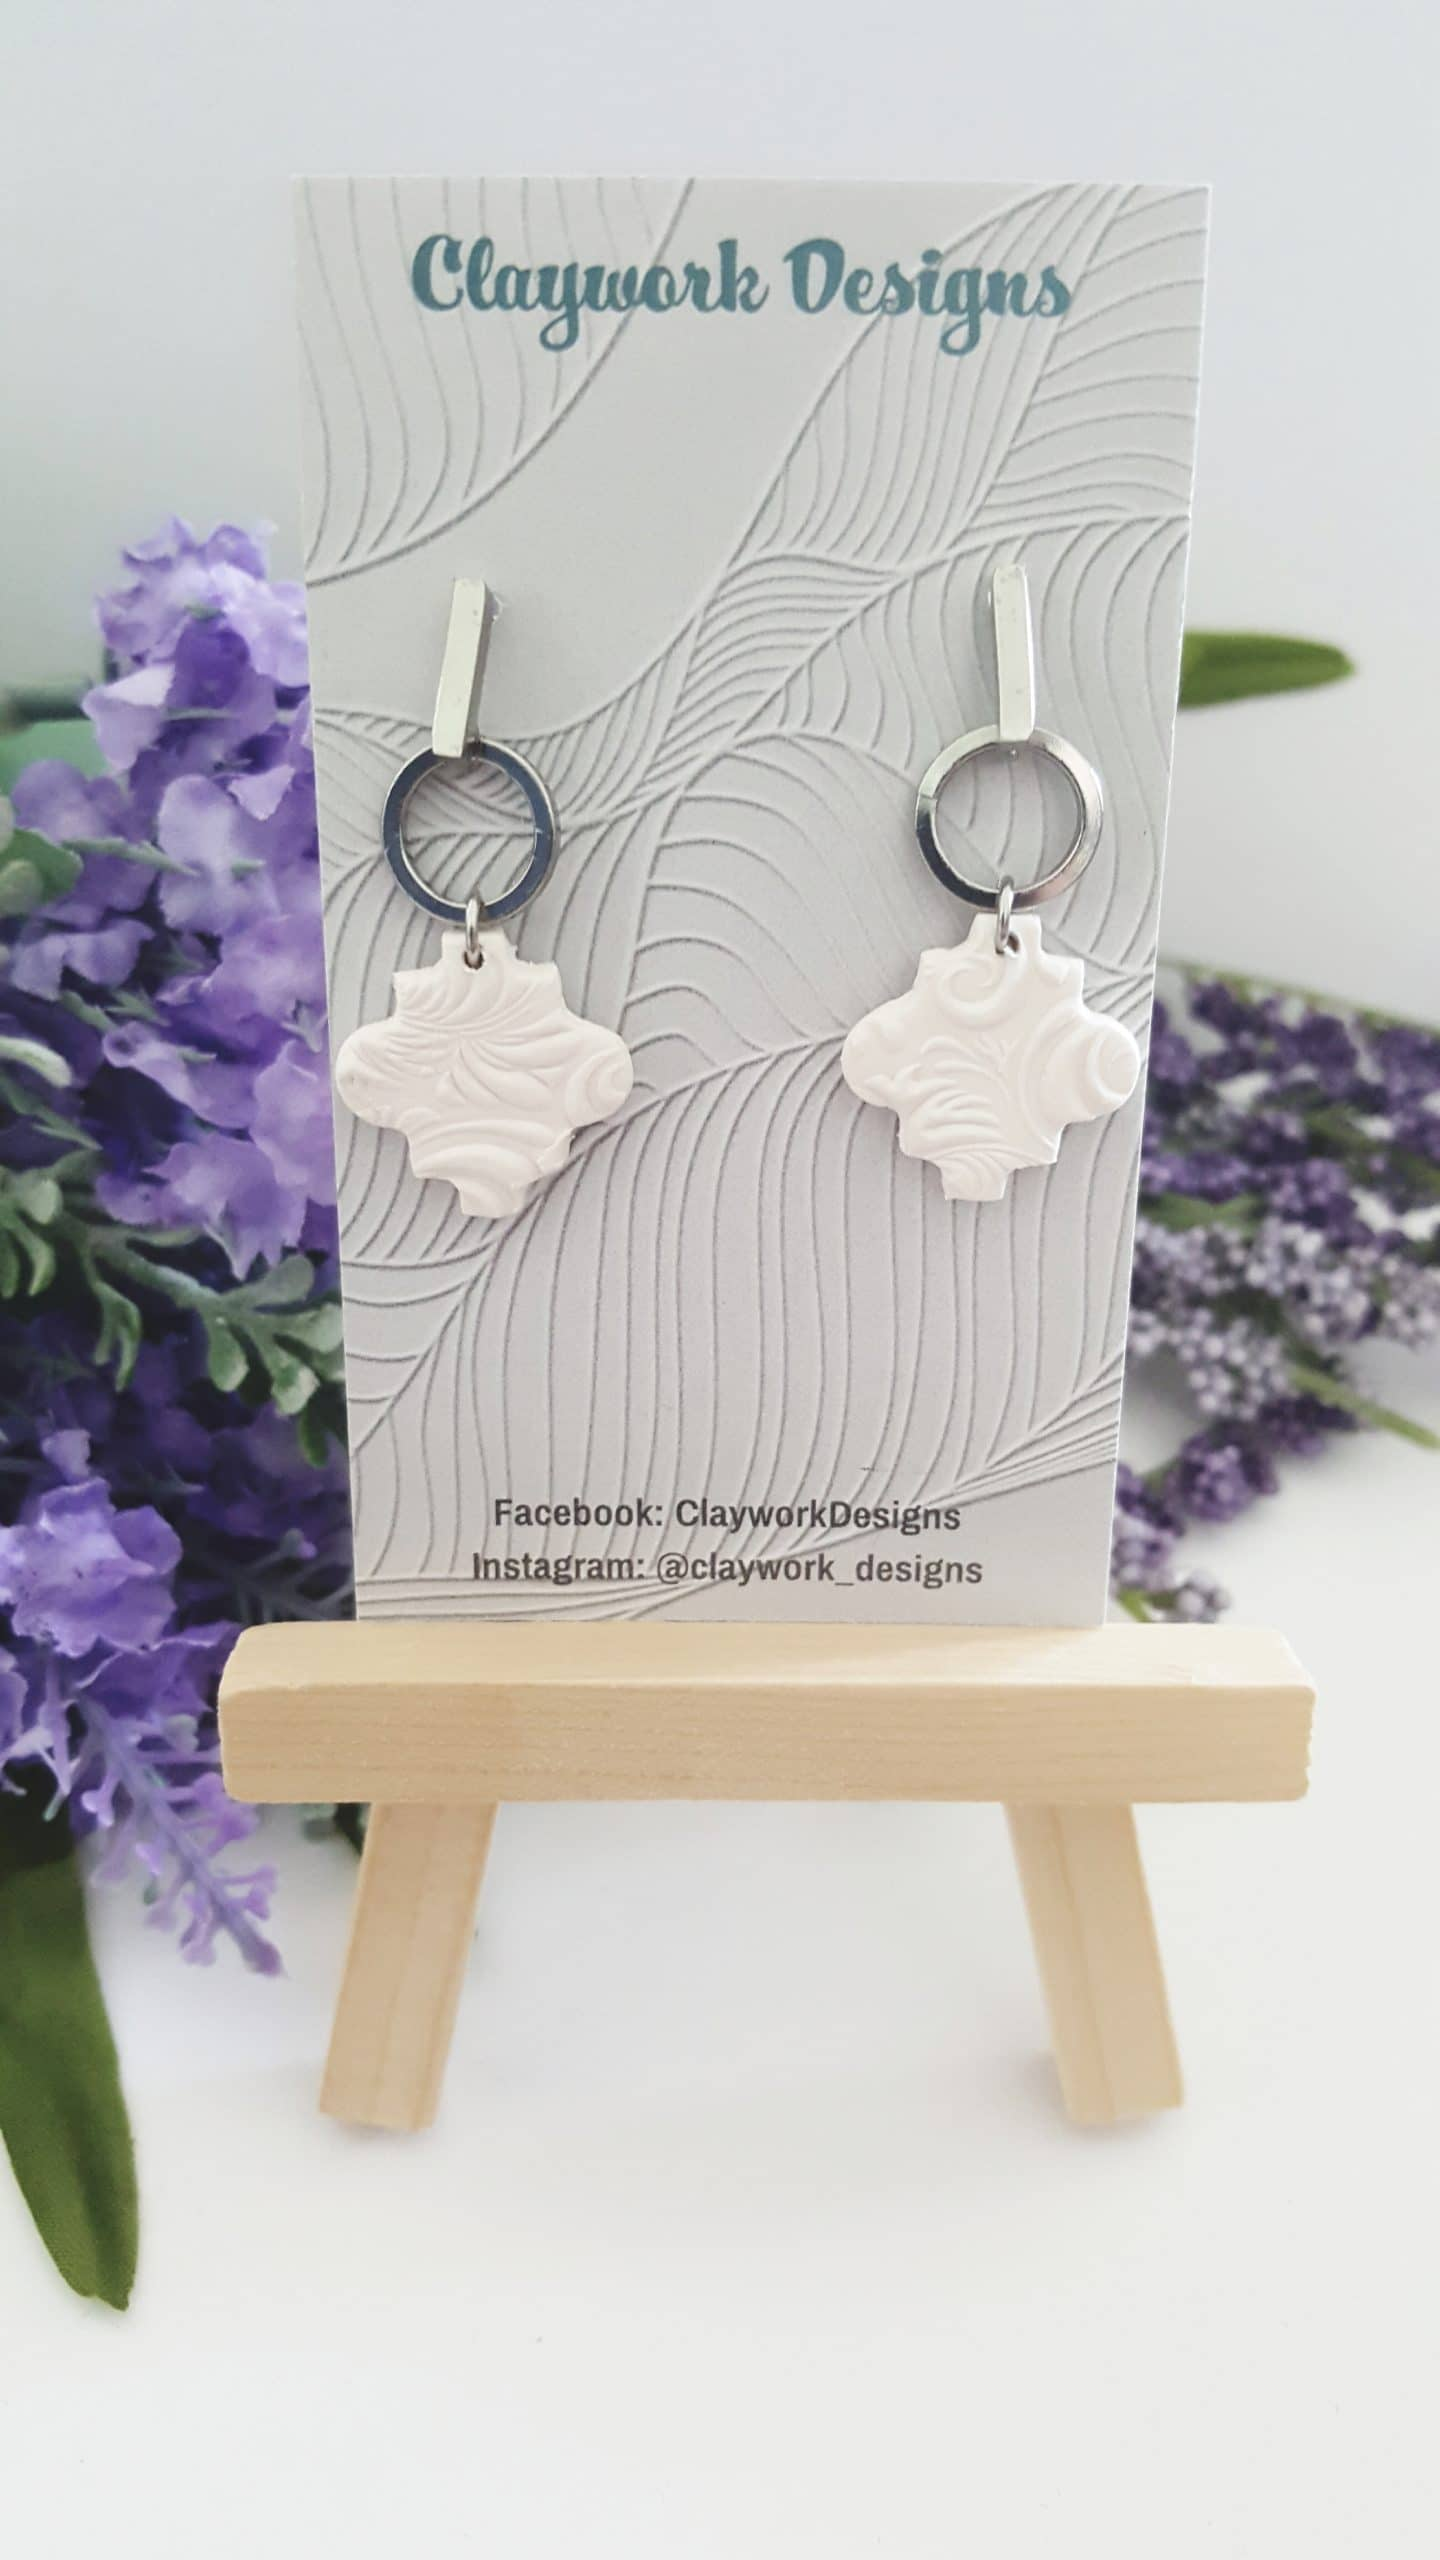 Wirework Designs   Handcrafted chainmaille jewellery and chainmaille products   Clay Dangle Stud Earrings - Single pair   20210515_152450